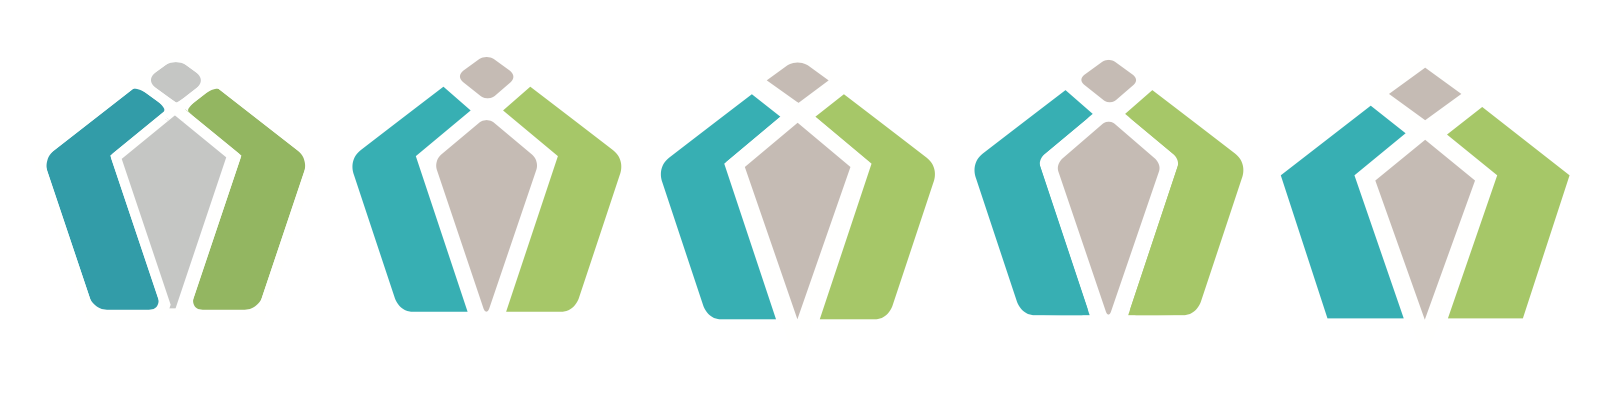 Symbol refinement. The shapes represent two pieces: the government and the health care industry coming together to support the individual who brings them together.